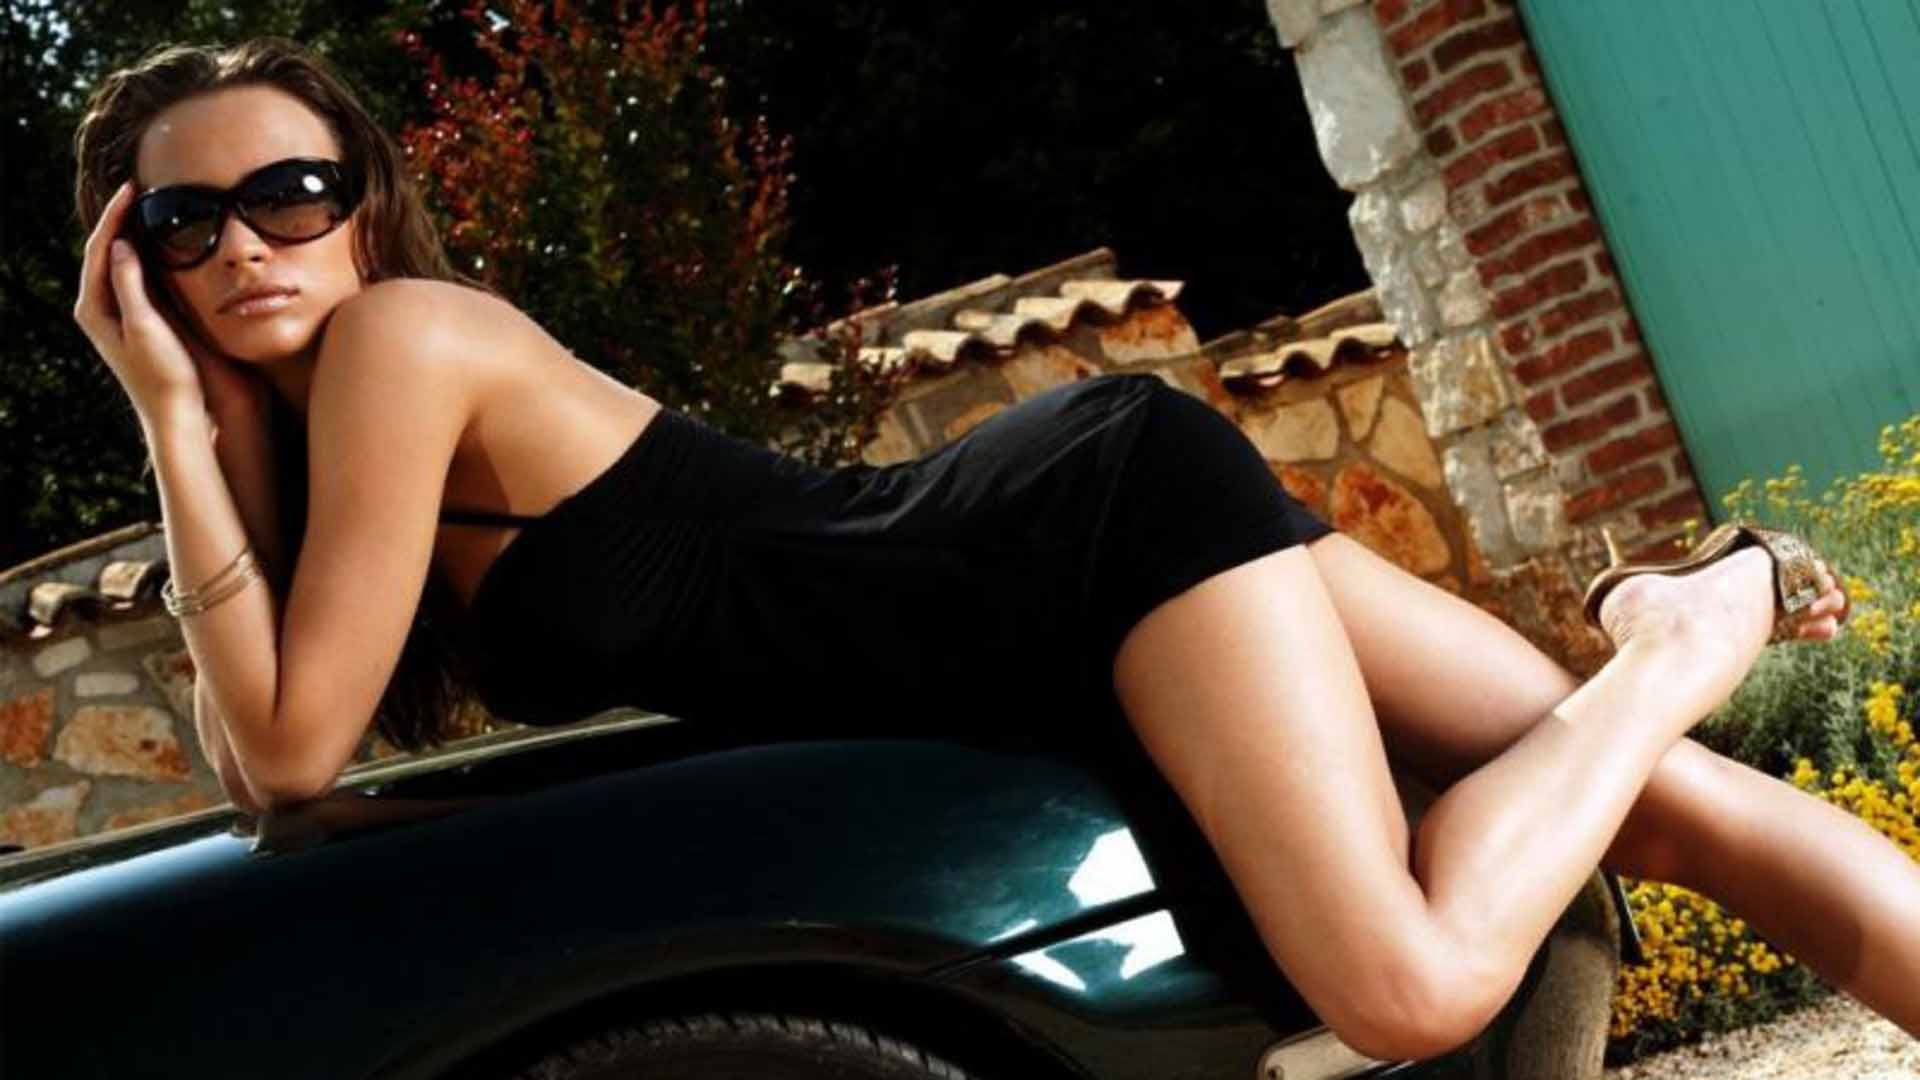 Cool cars and girls